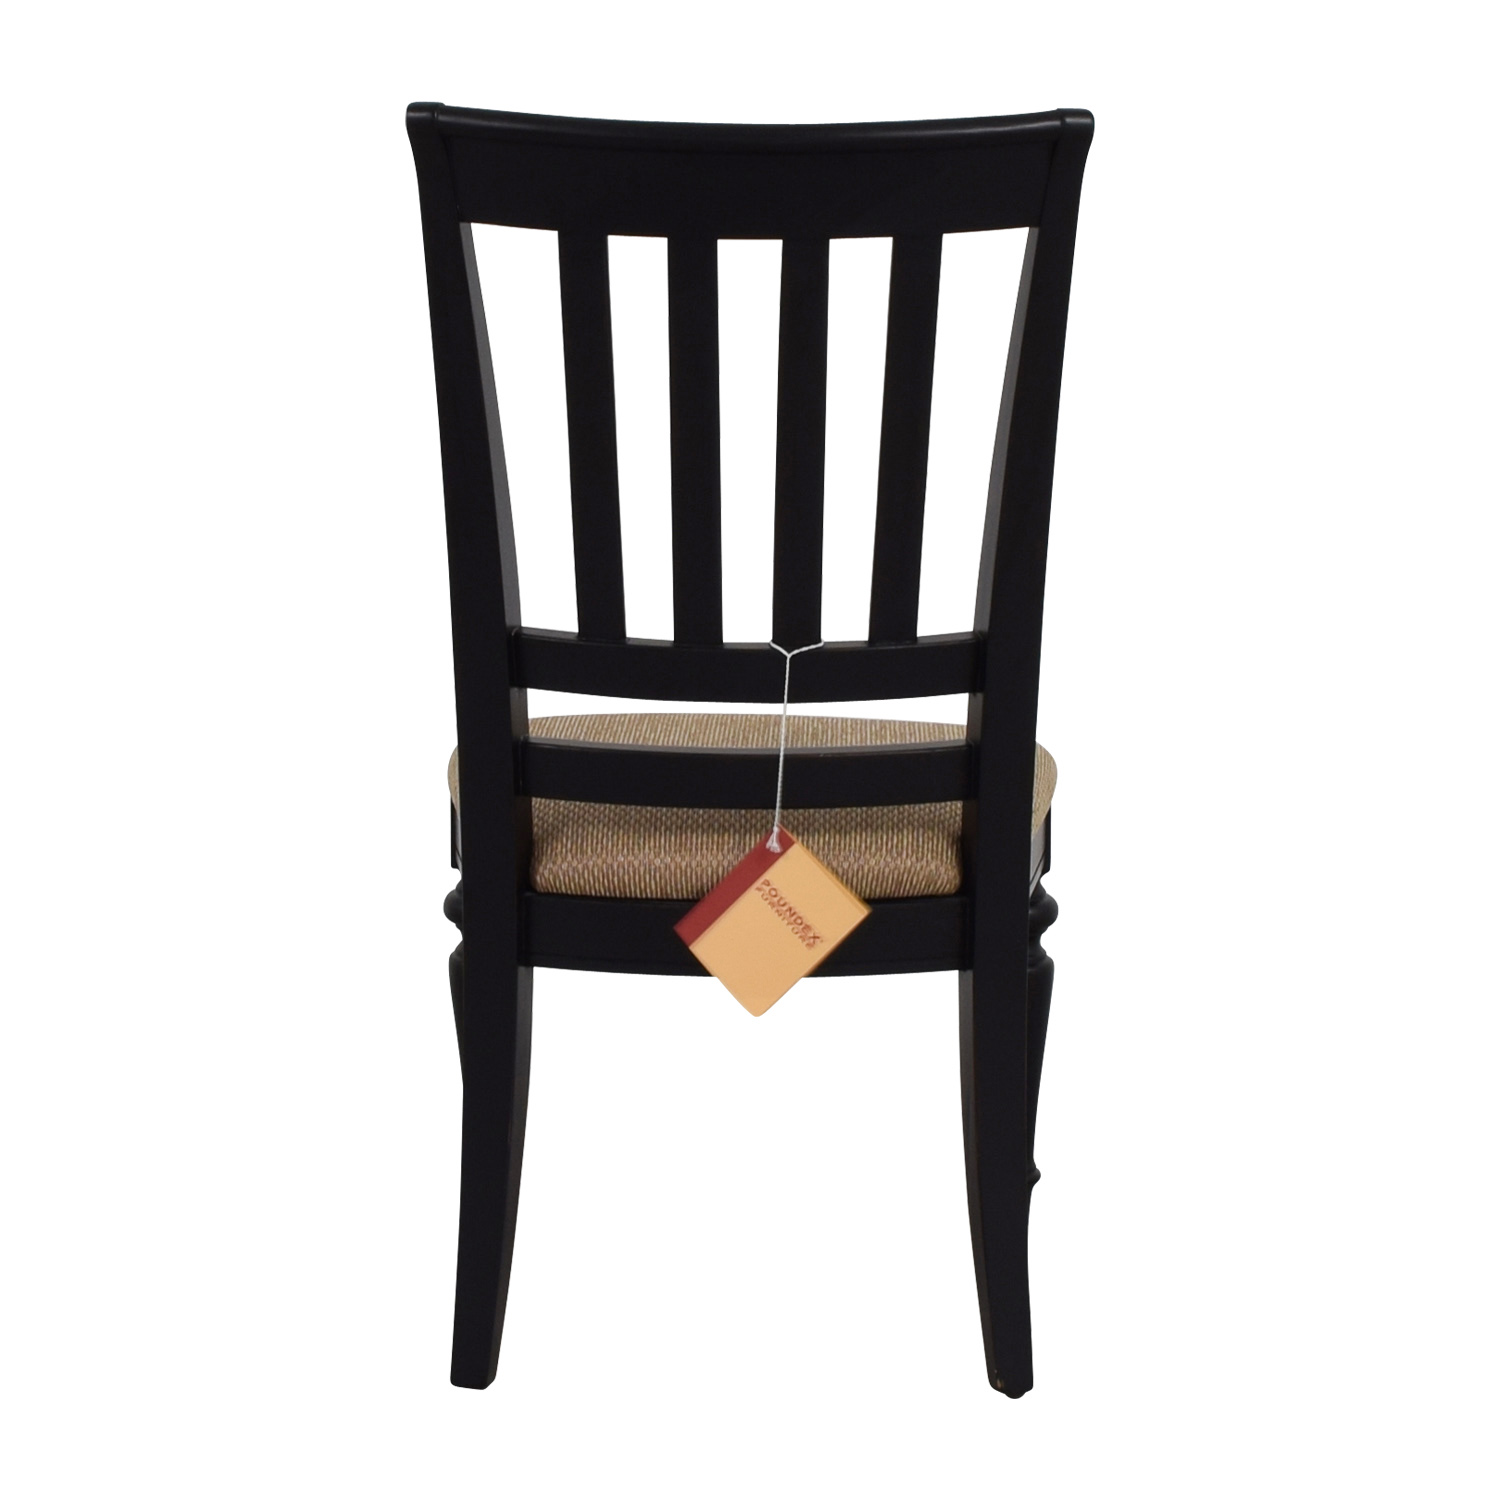 Poundex Furniture Black Chair with Padded Seat Poundex Furniture